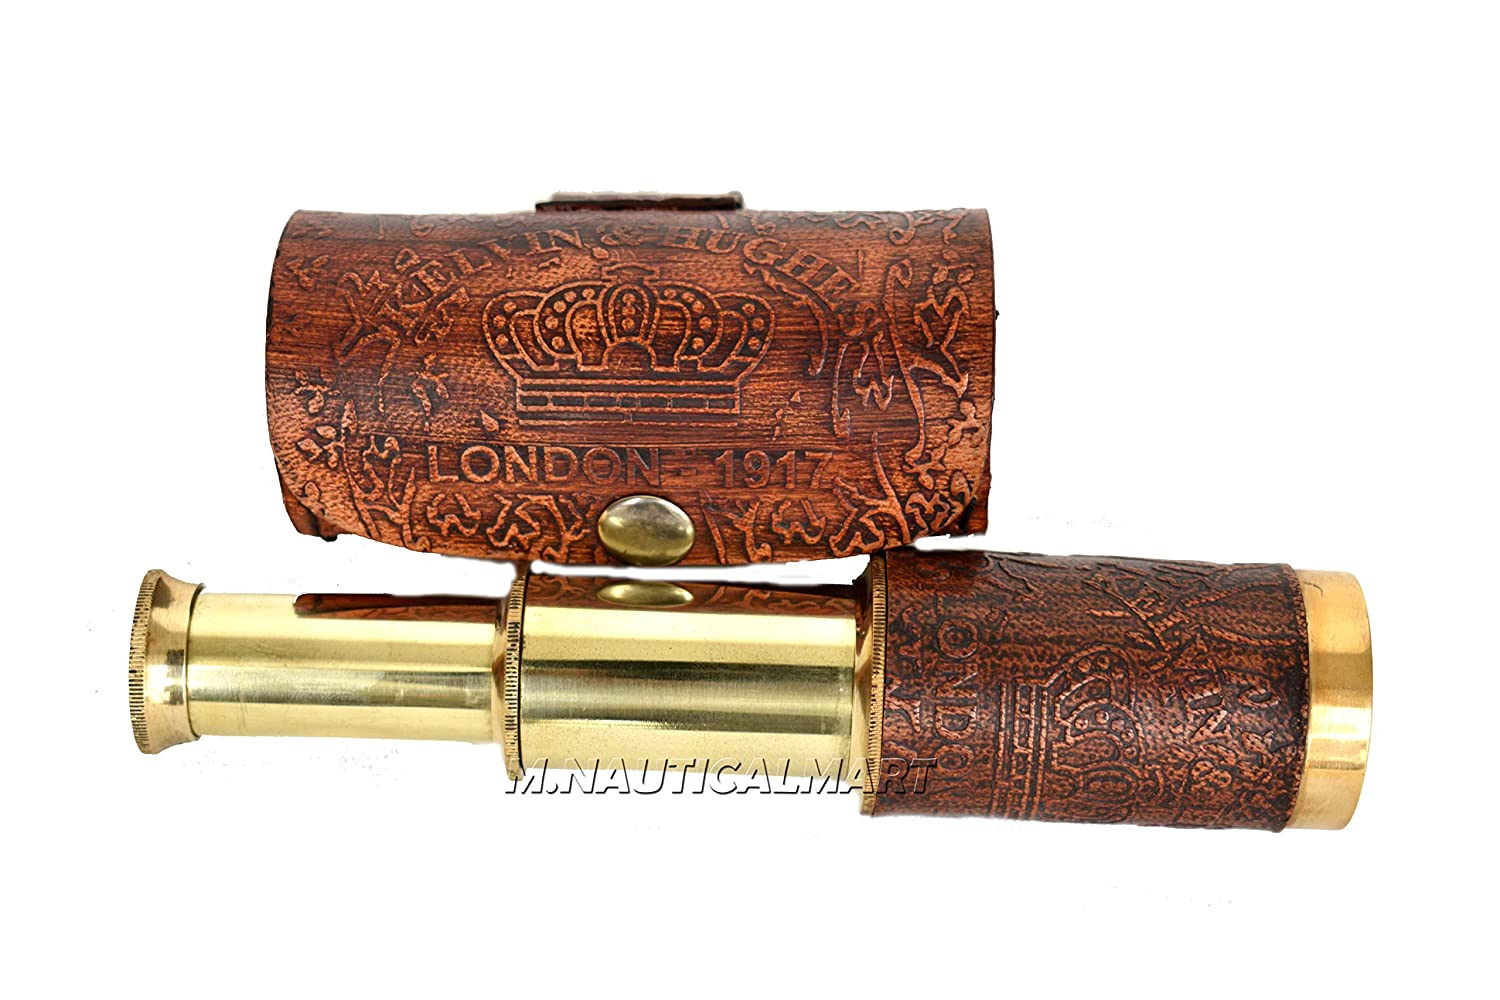 Folding Telescope Vintage Shiny Brass Maritime Royal Navy Style with Lather Box Dcorative M.Nauticalmart